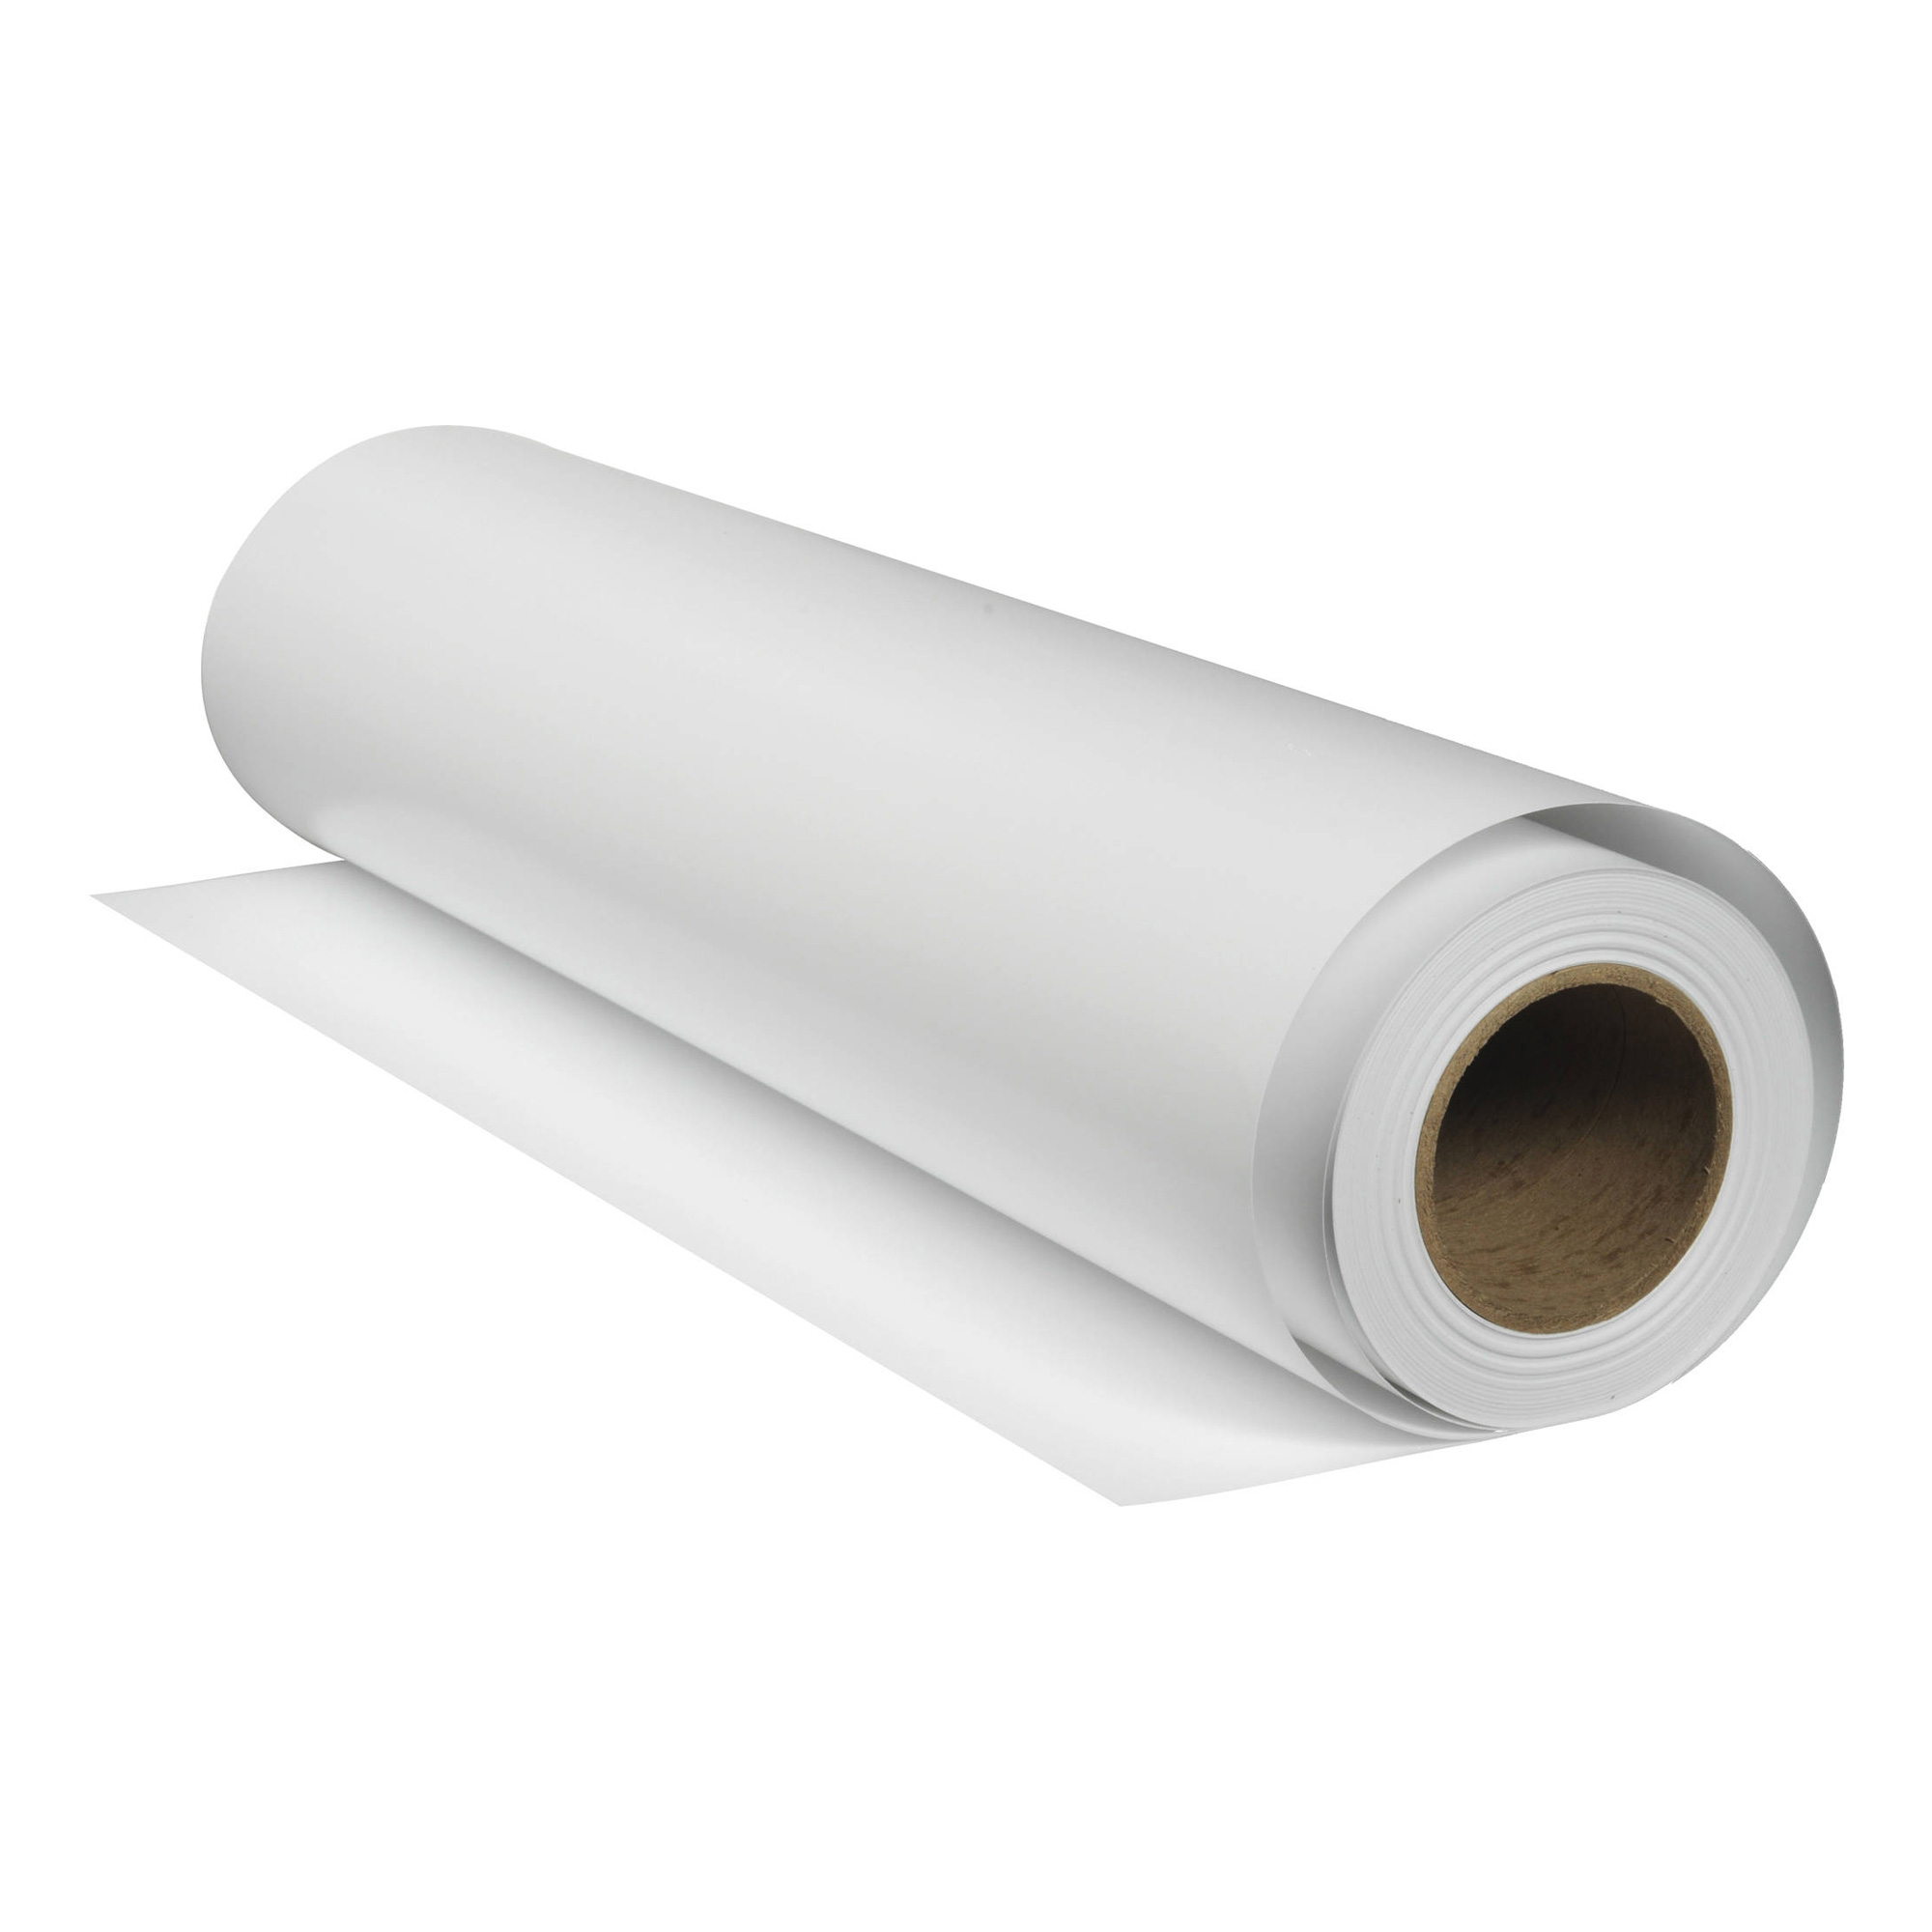 17 In. x 50 ft. Legacy Baryta Paper Roll